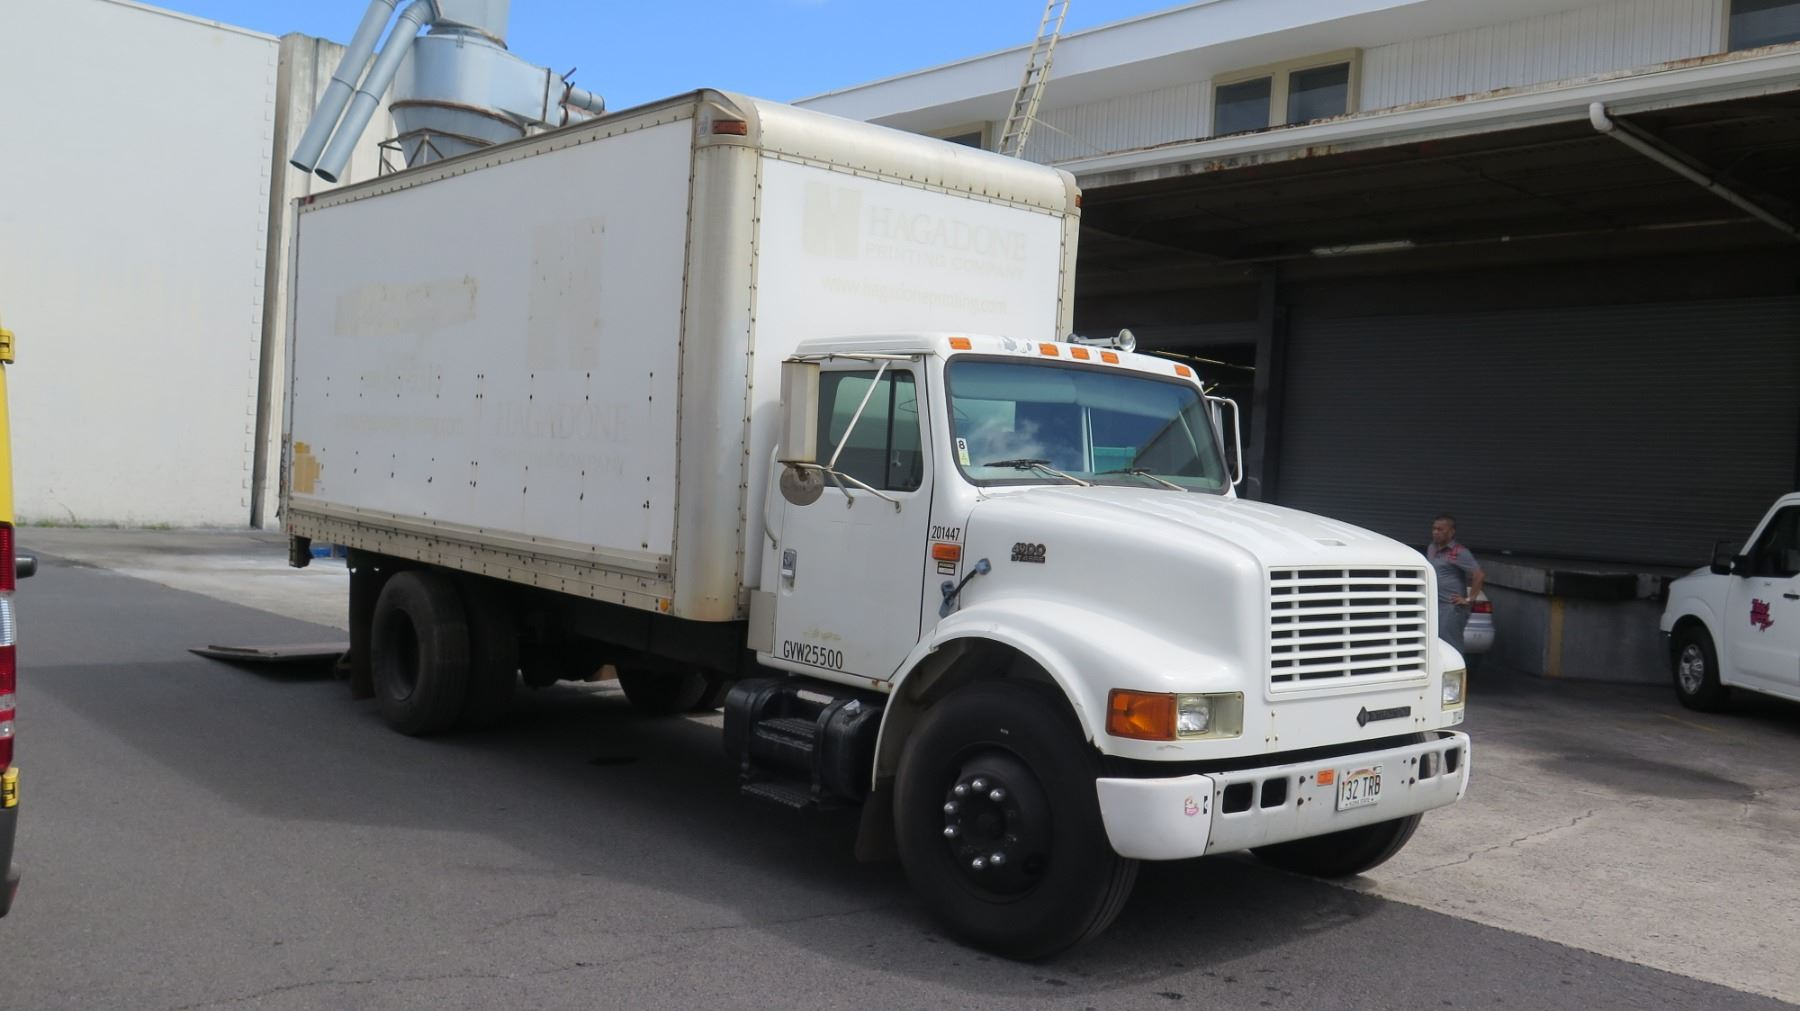 hight resolution of  image 3 1997 international box truck with lift gate